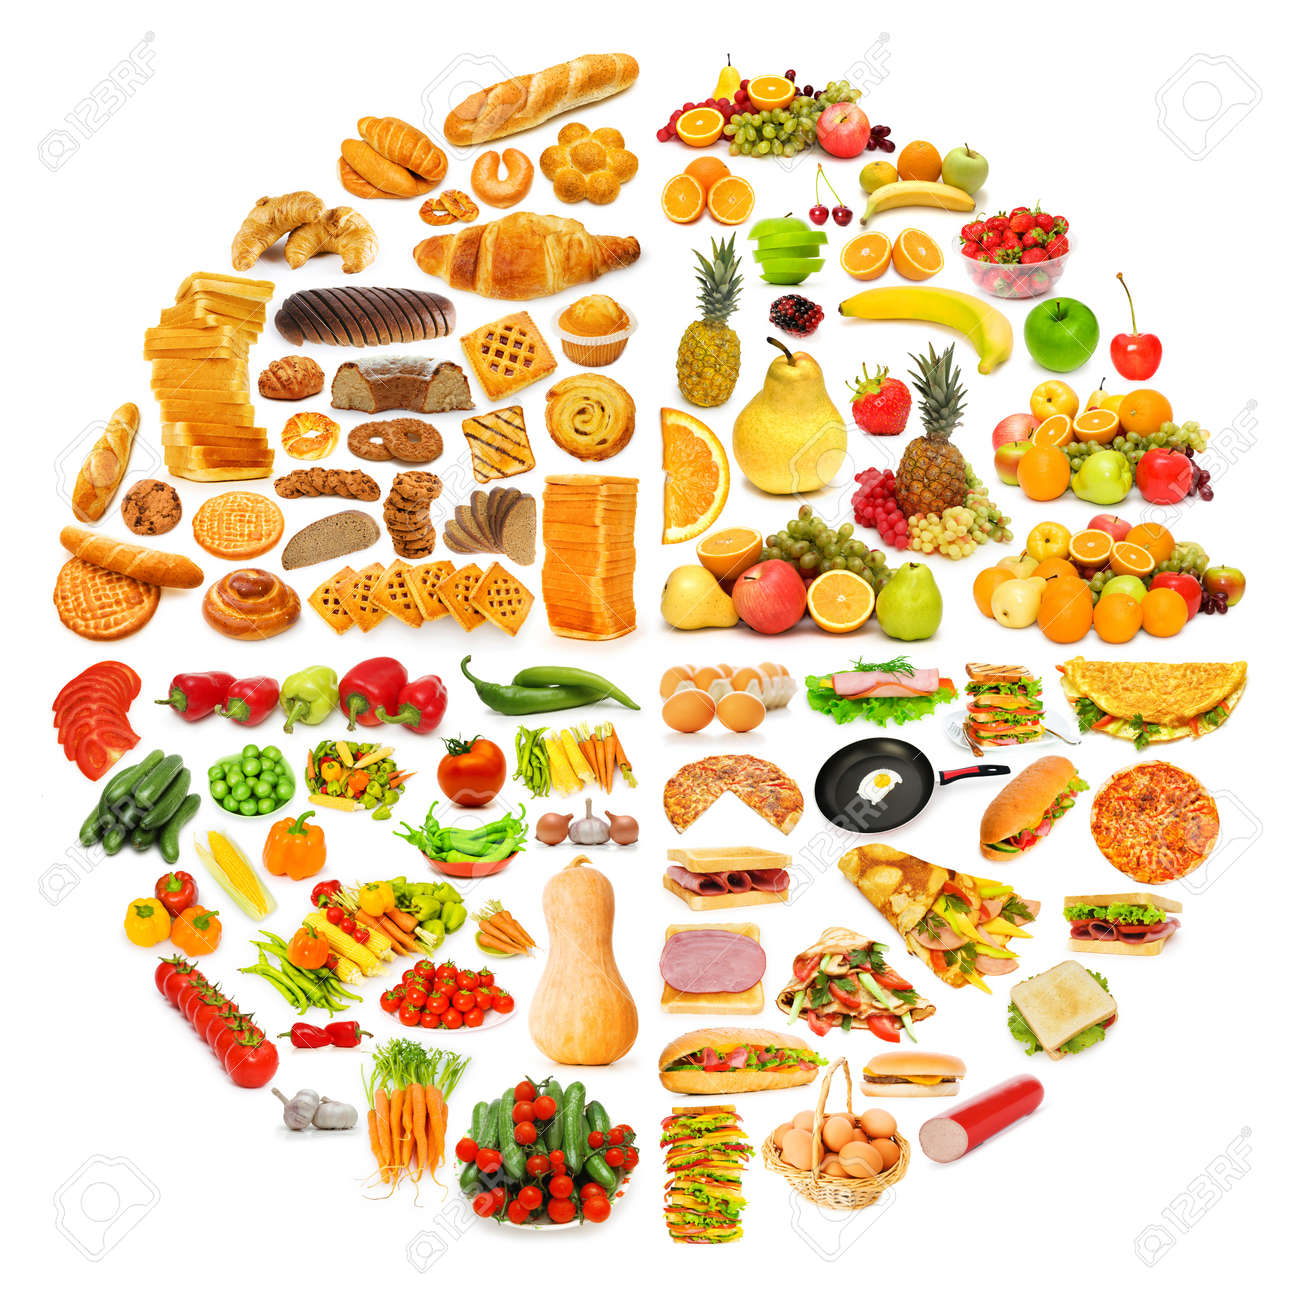 Circle With Lots Of Food Items Stock Photo, Picture And Royalty ...